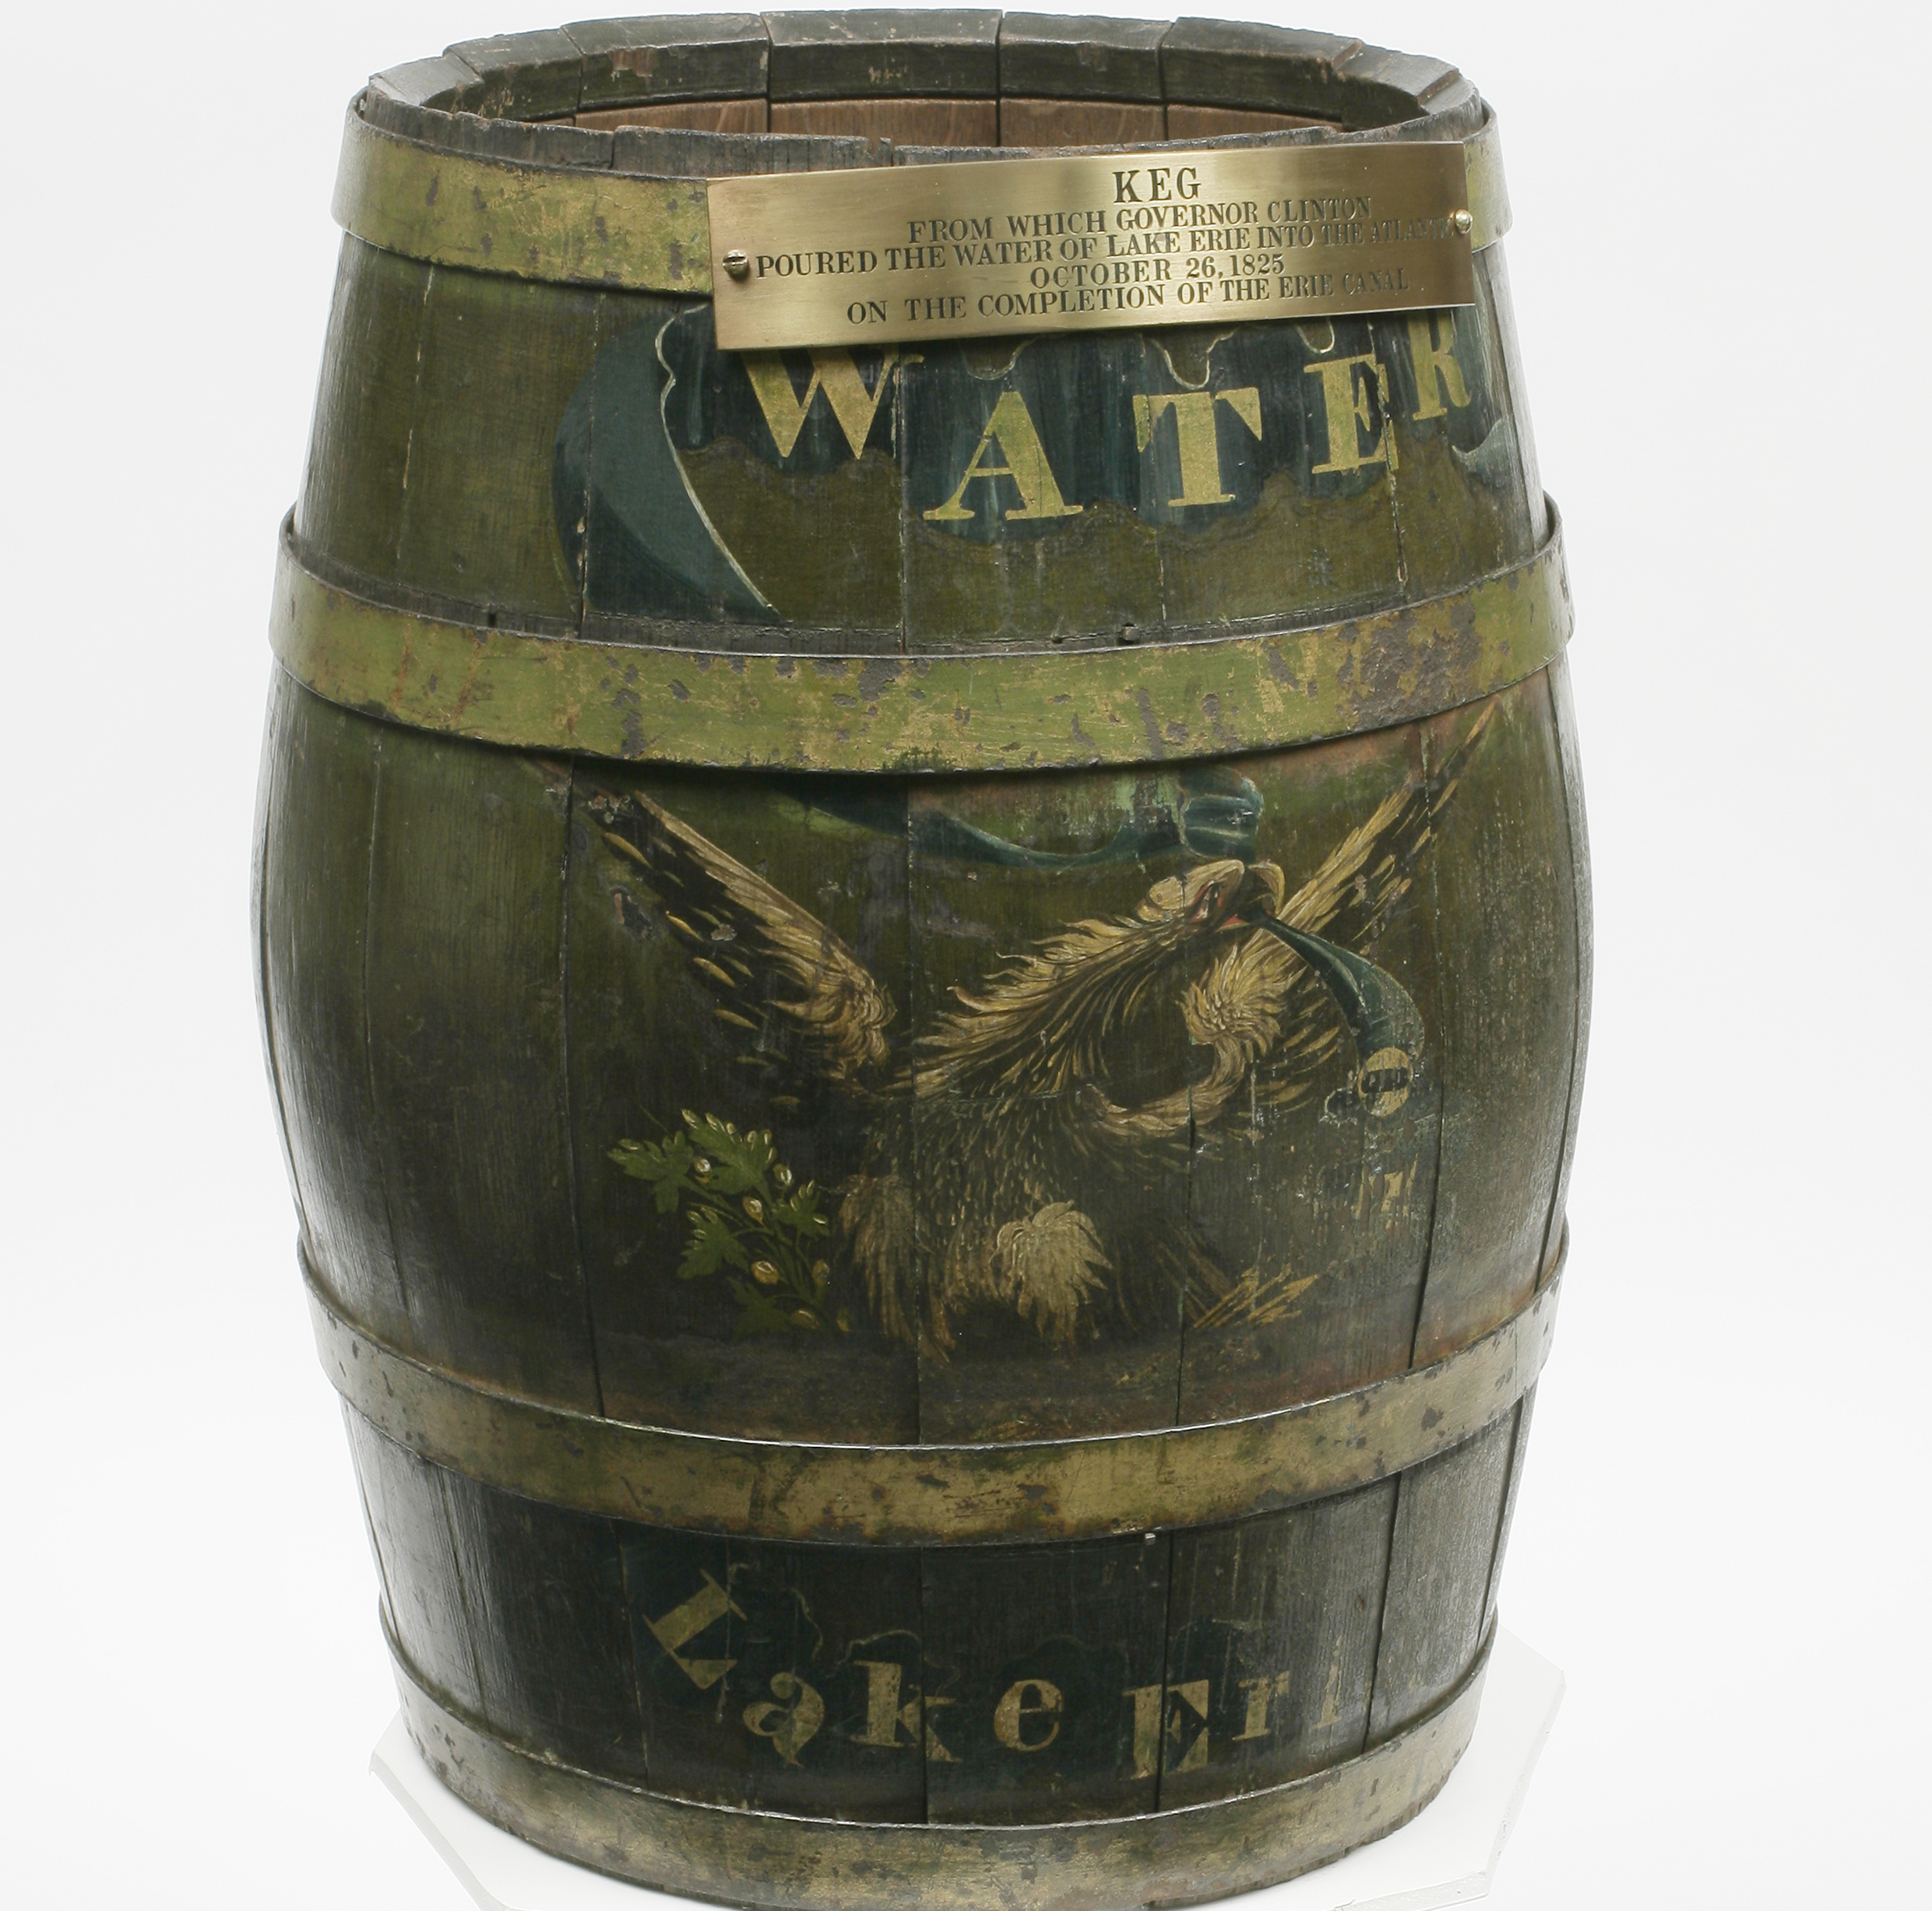 Original Eire Canal Barrel